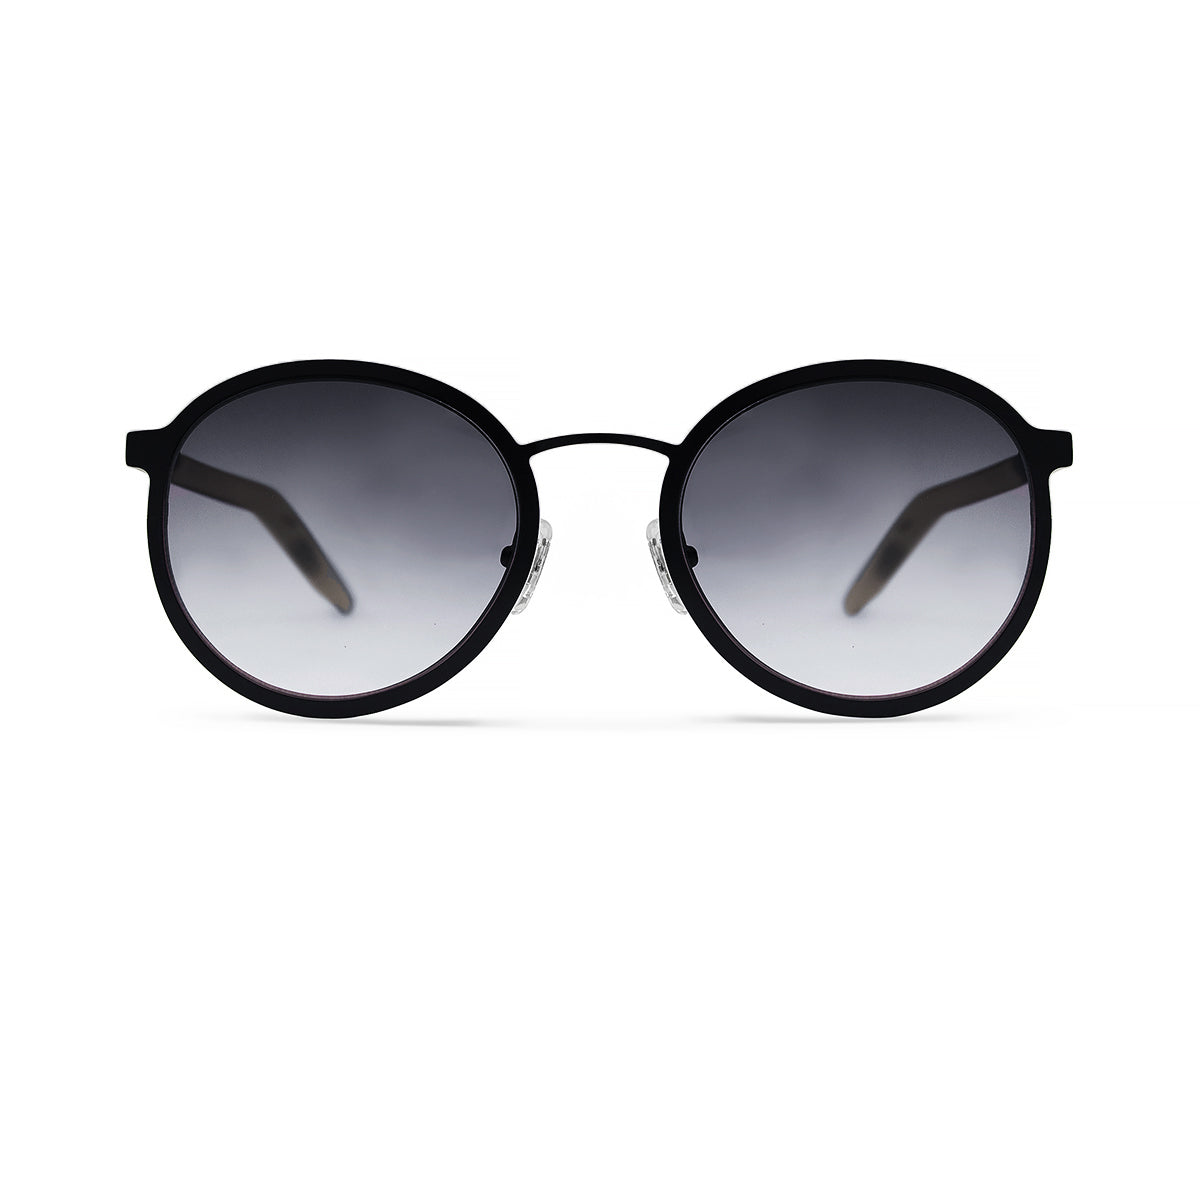 Metal / Horn. Matte Black / Tortoise. Smoke Lens. - BLYSZAK eyewear eyewear - eyewear, optical, sunglasses